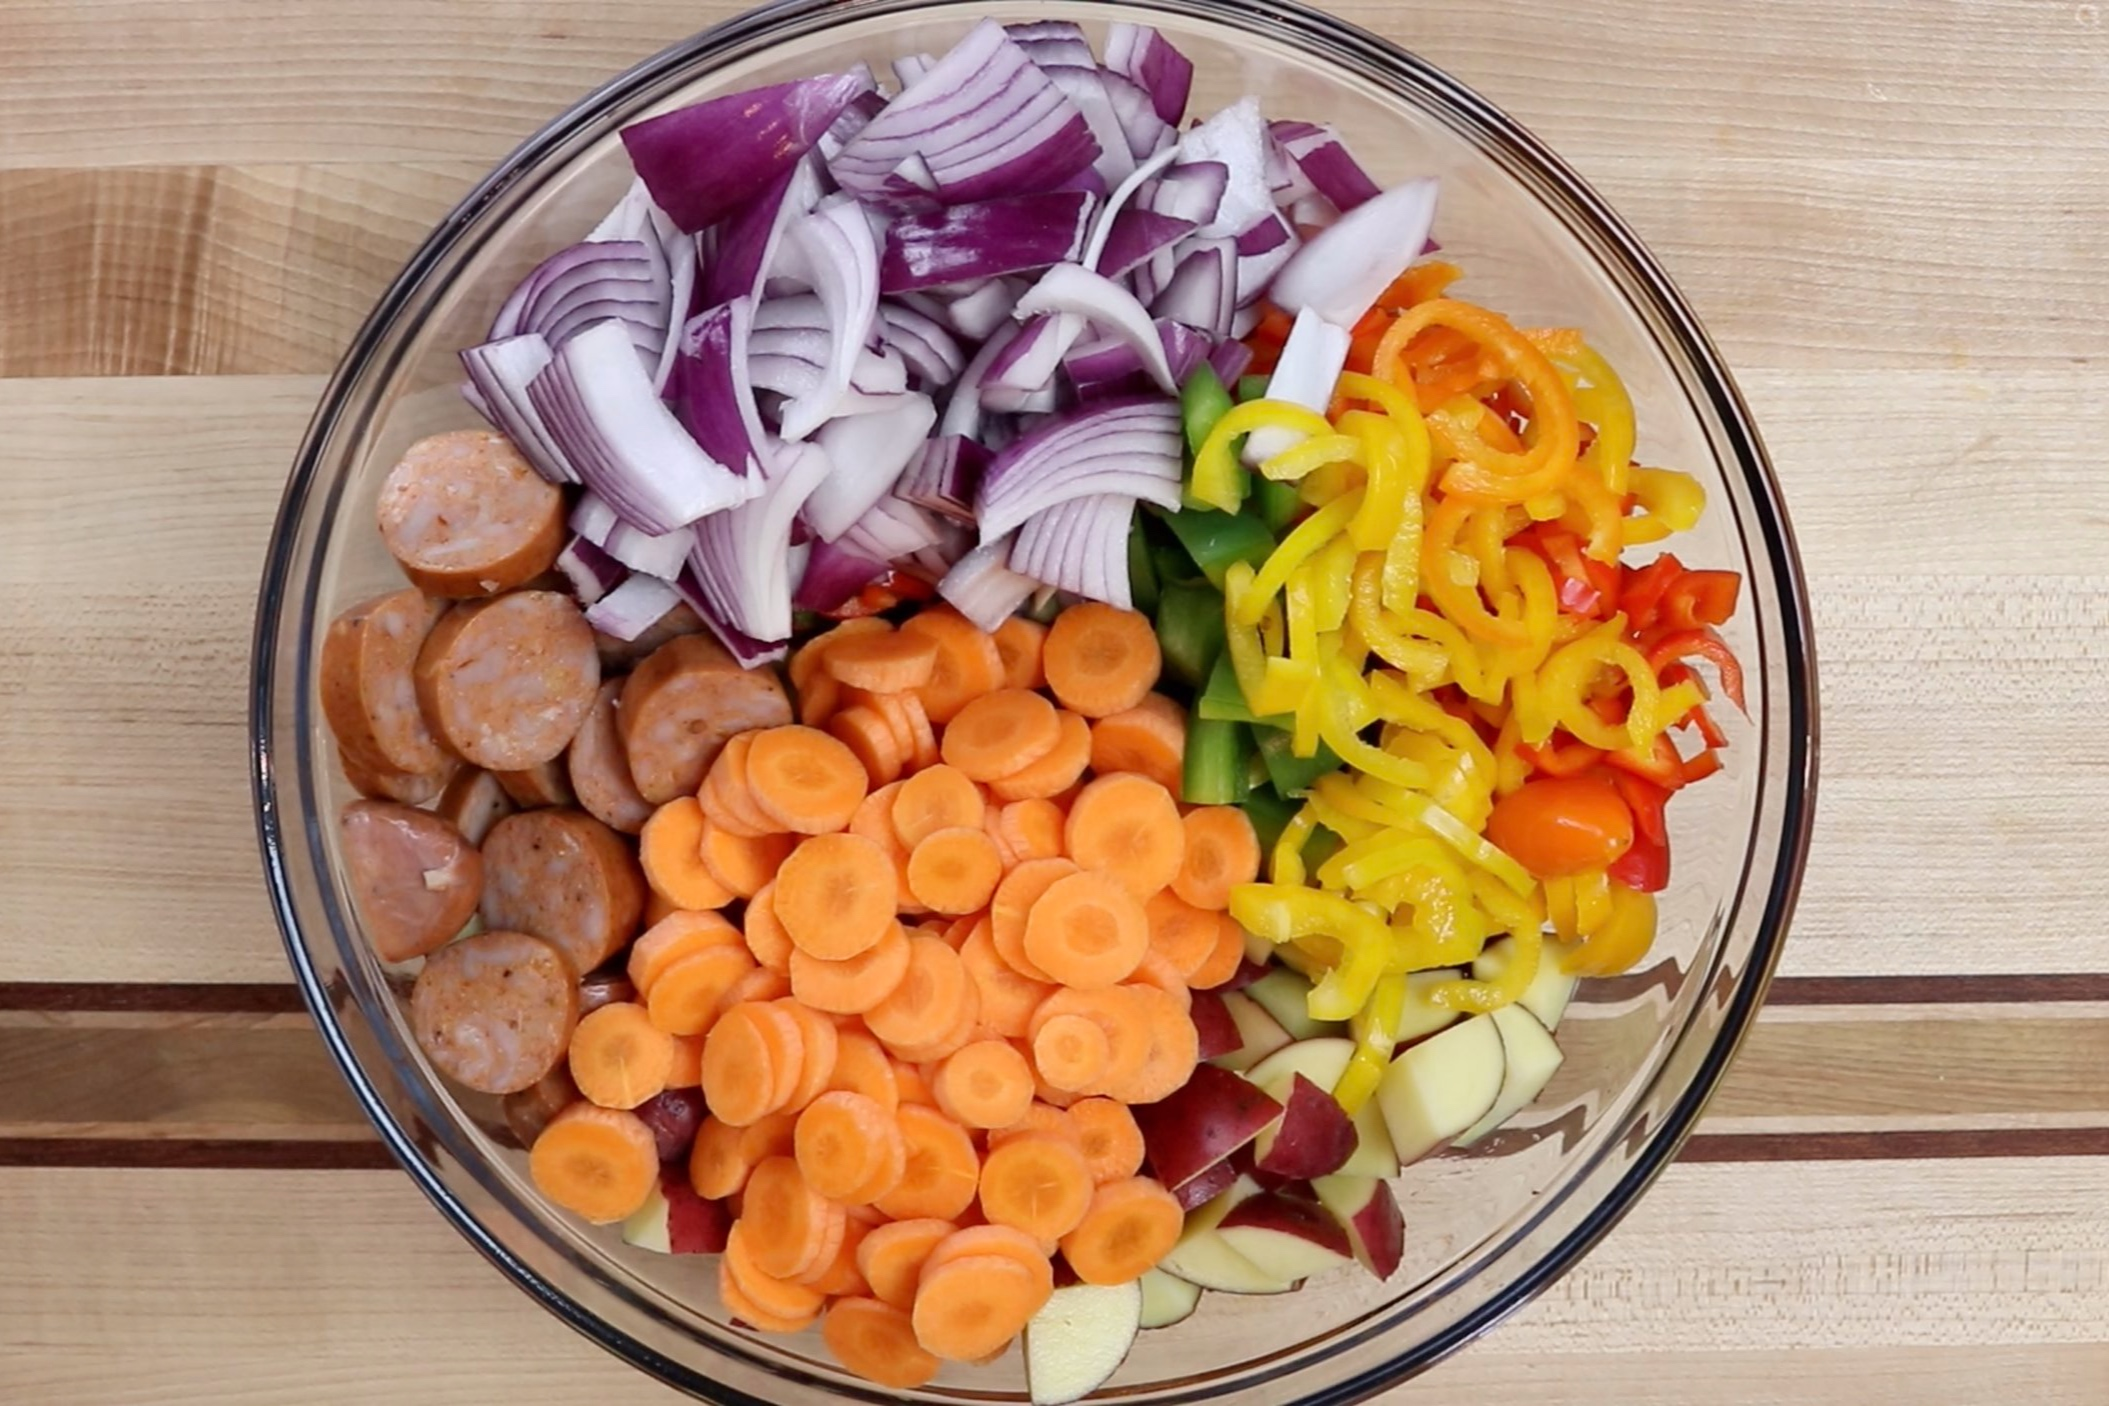 3. Cut the chicken sausage into 1-inch pieces, cut potatoes into small cubes, cut red onion into small wedges, cut the carrots into 1/2 inch pieces, chop the green pepper and slice the baby peppers into small rings. -